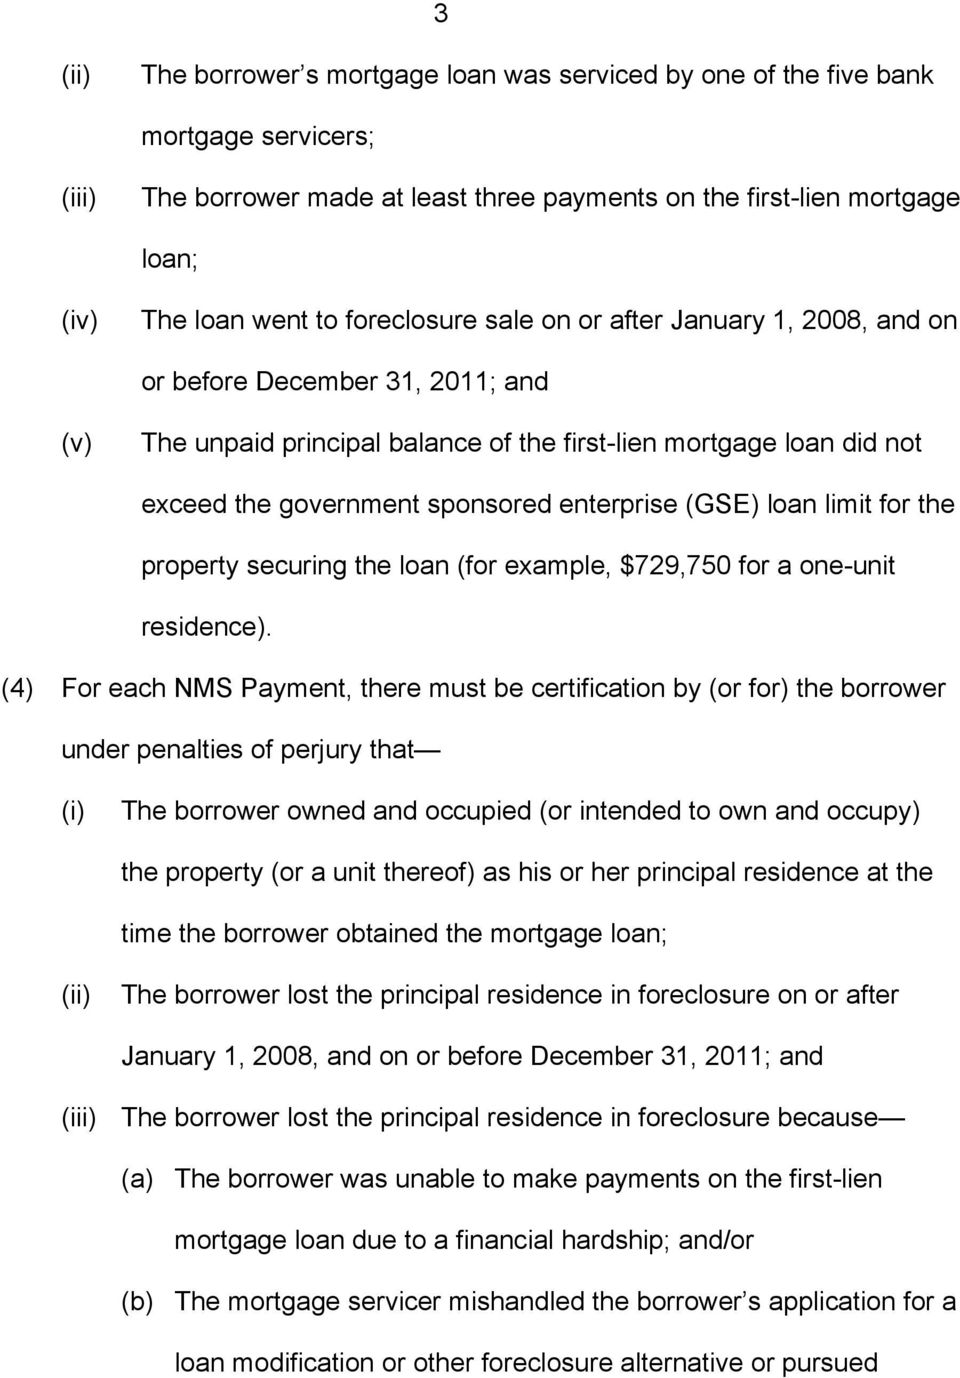 enterprise (GSE) loan limit for the property securing the loan (for example, $729,750 for a one-unit residence).